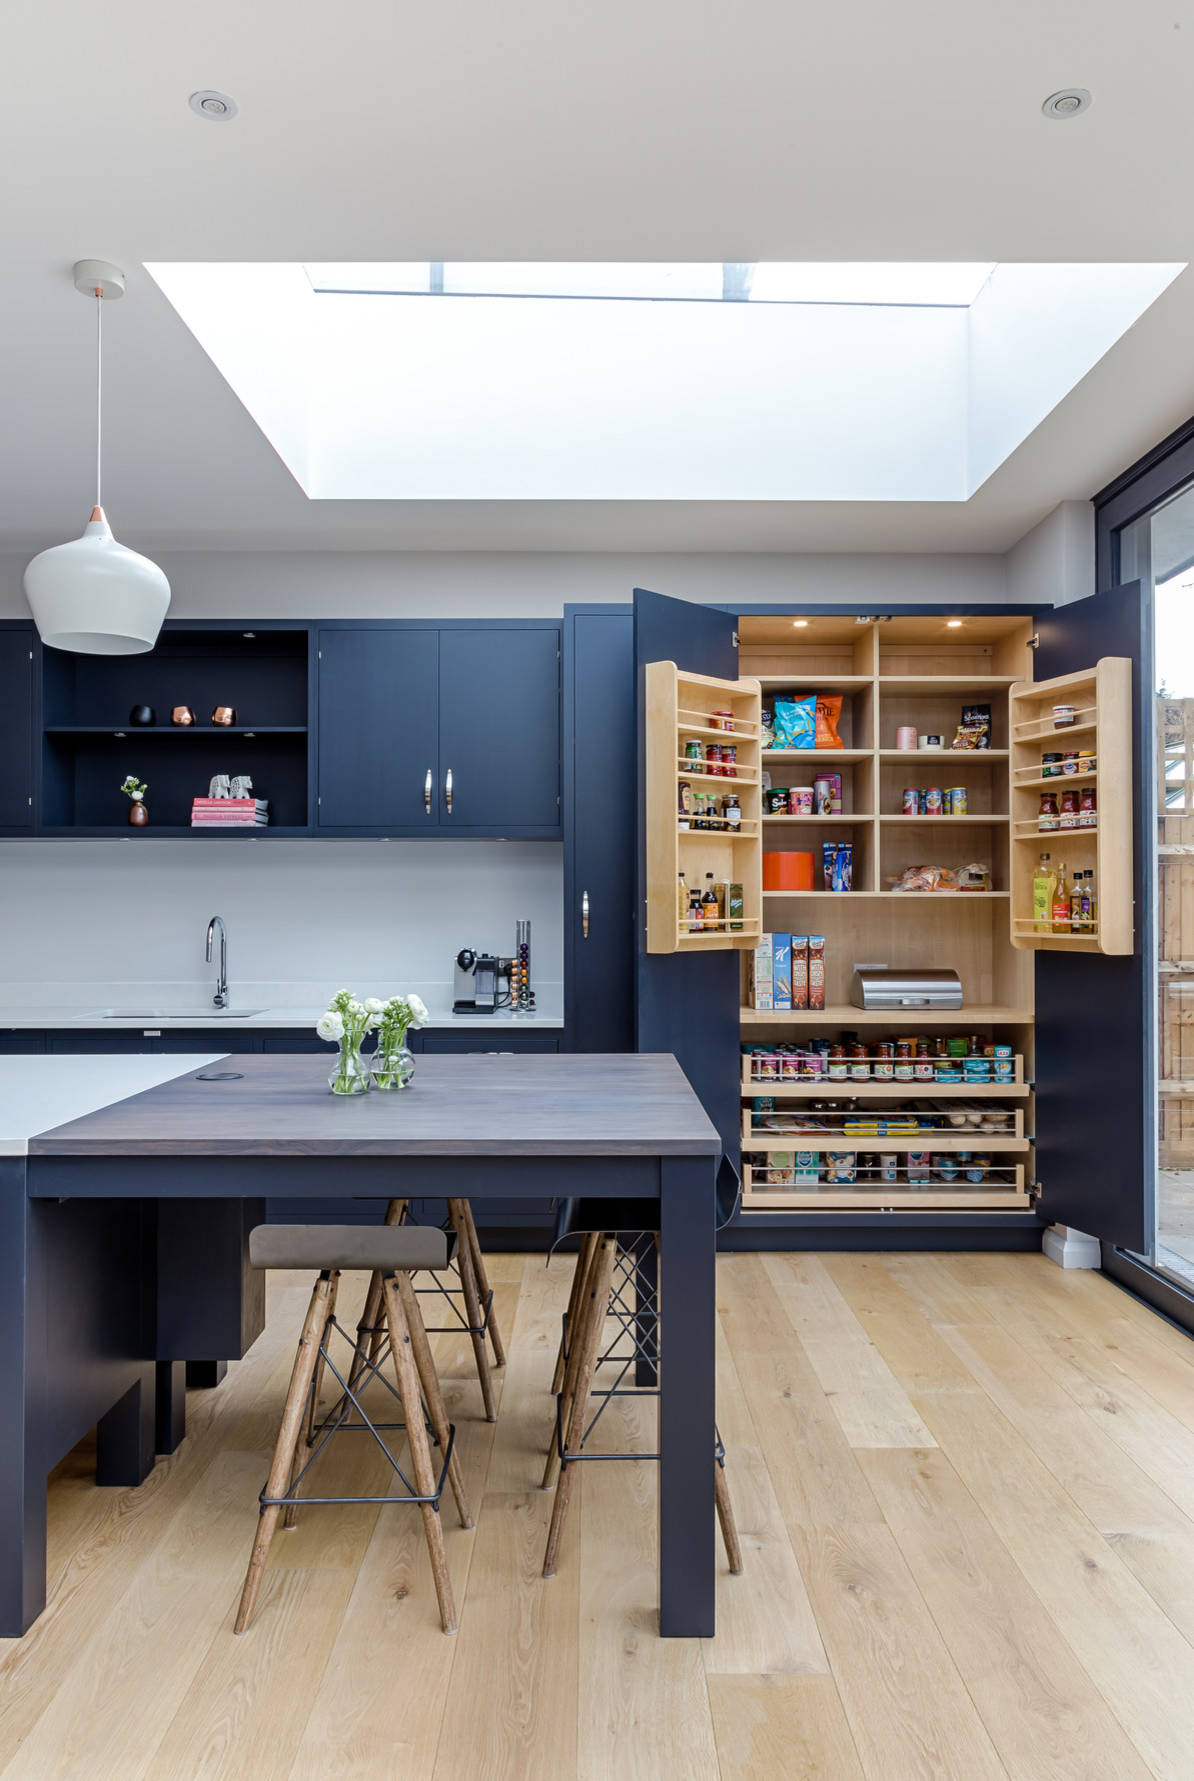 75 Beautiful Kitchen With Blue Countertops Pictures Ideas January 2021 Houzz